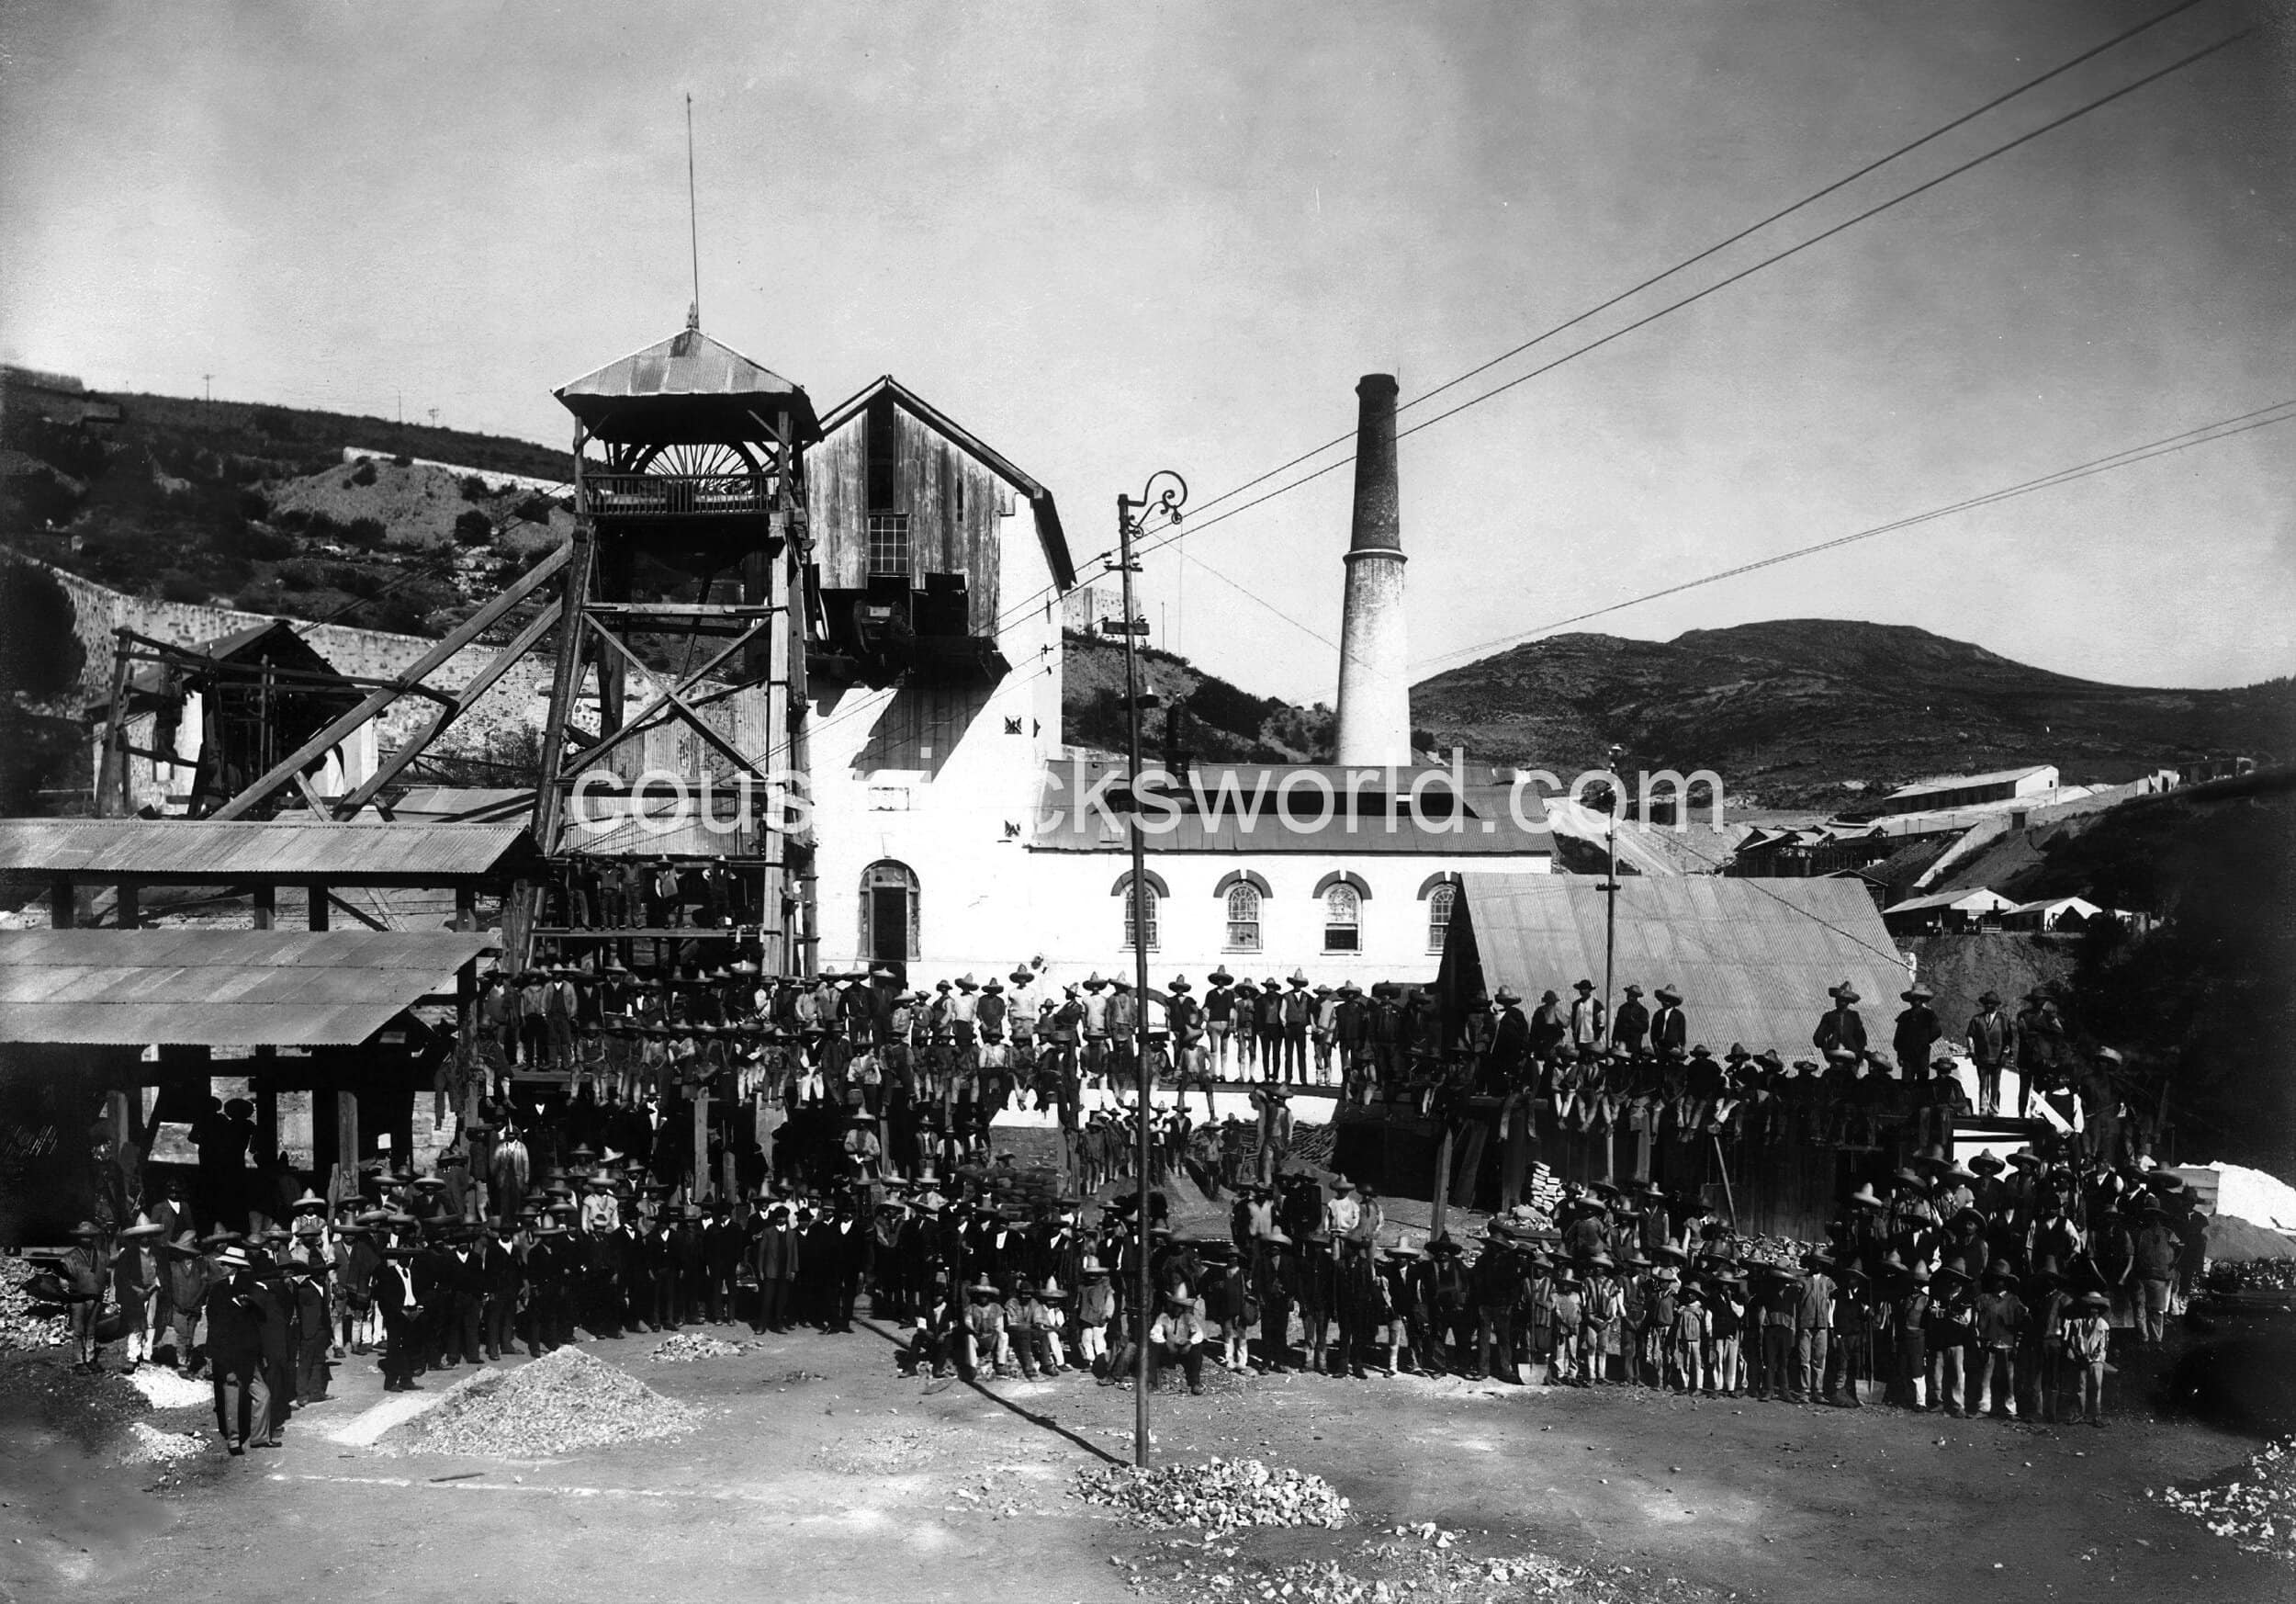 Electricity replaces Cornish steam technology, Pachuca, Mexico. The end of Cornish mining migration